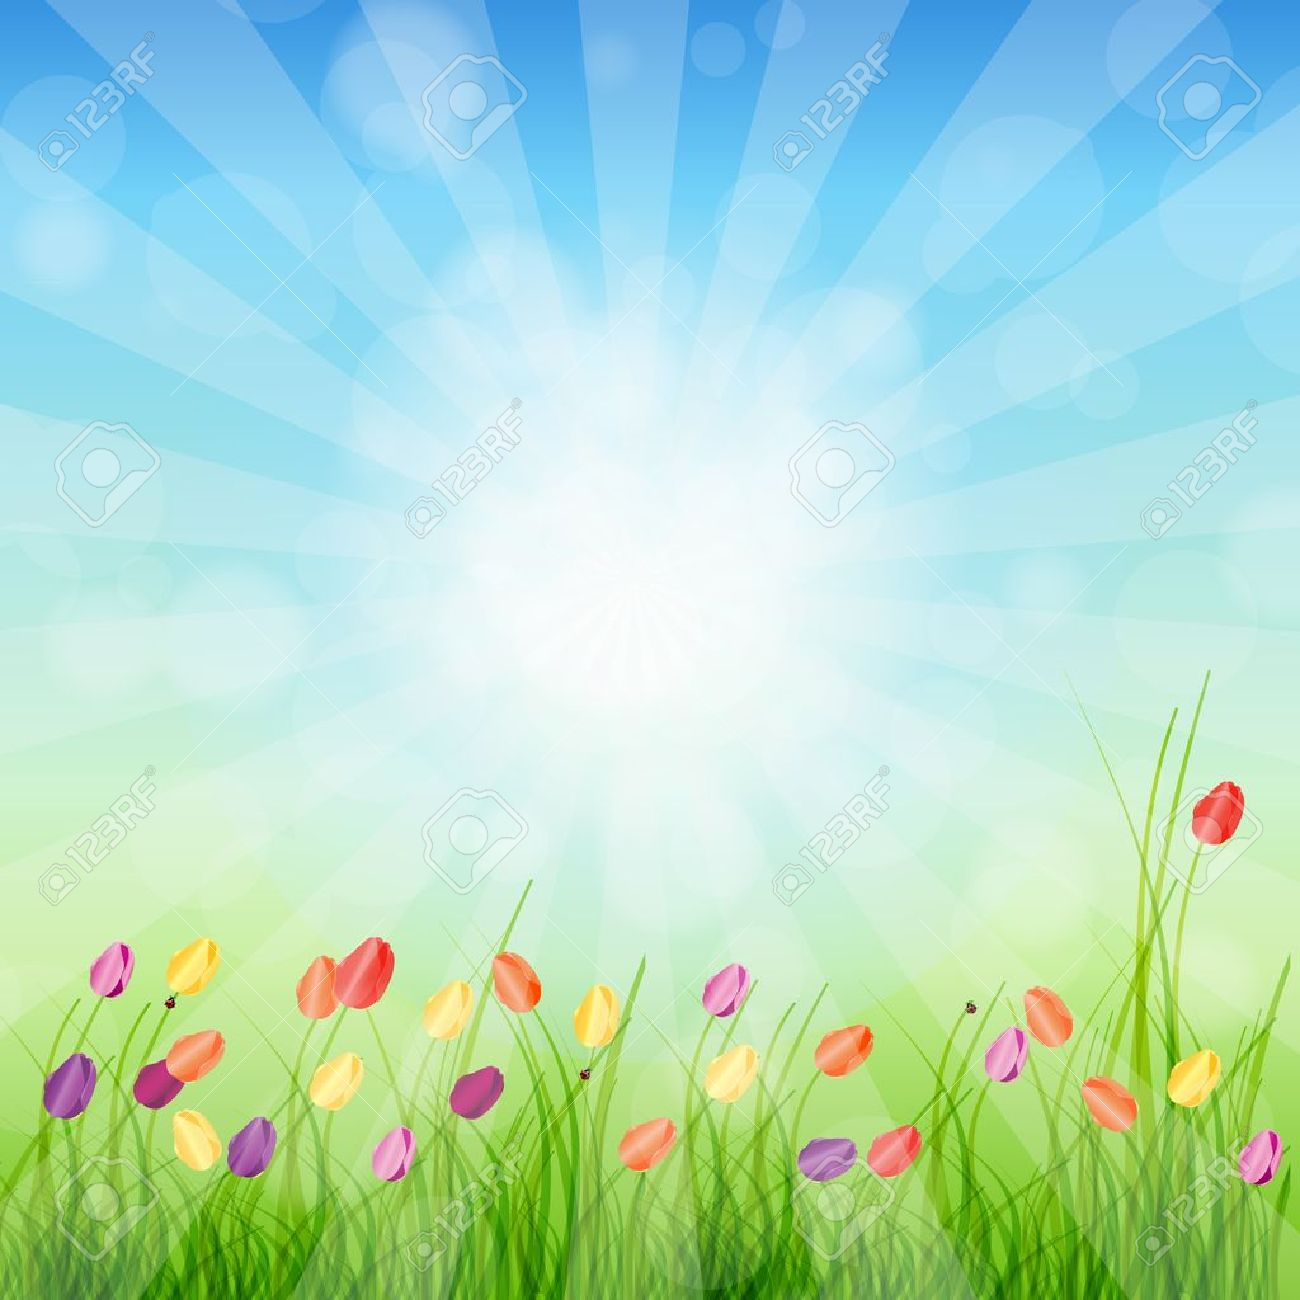 Summer Abstract Background with grass and tulips against sunny sky illustration Stock Vector - 12909816